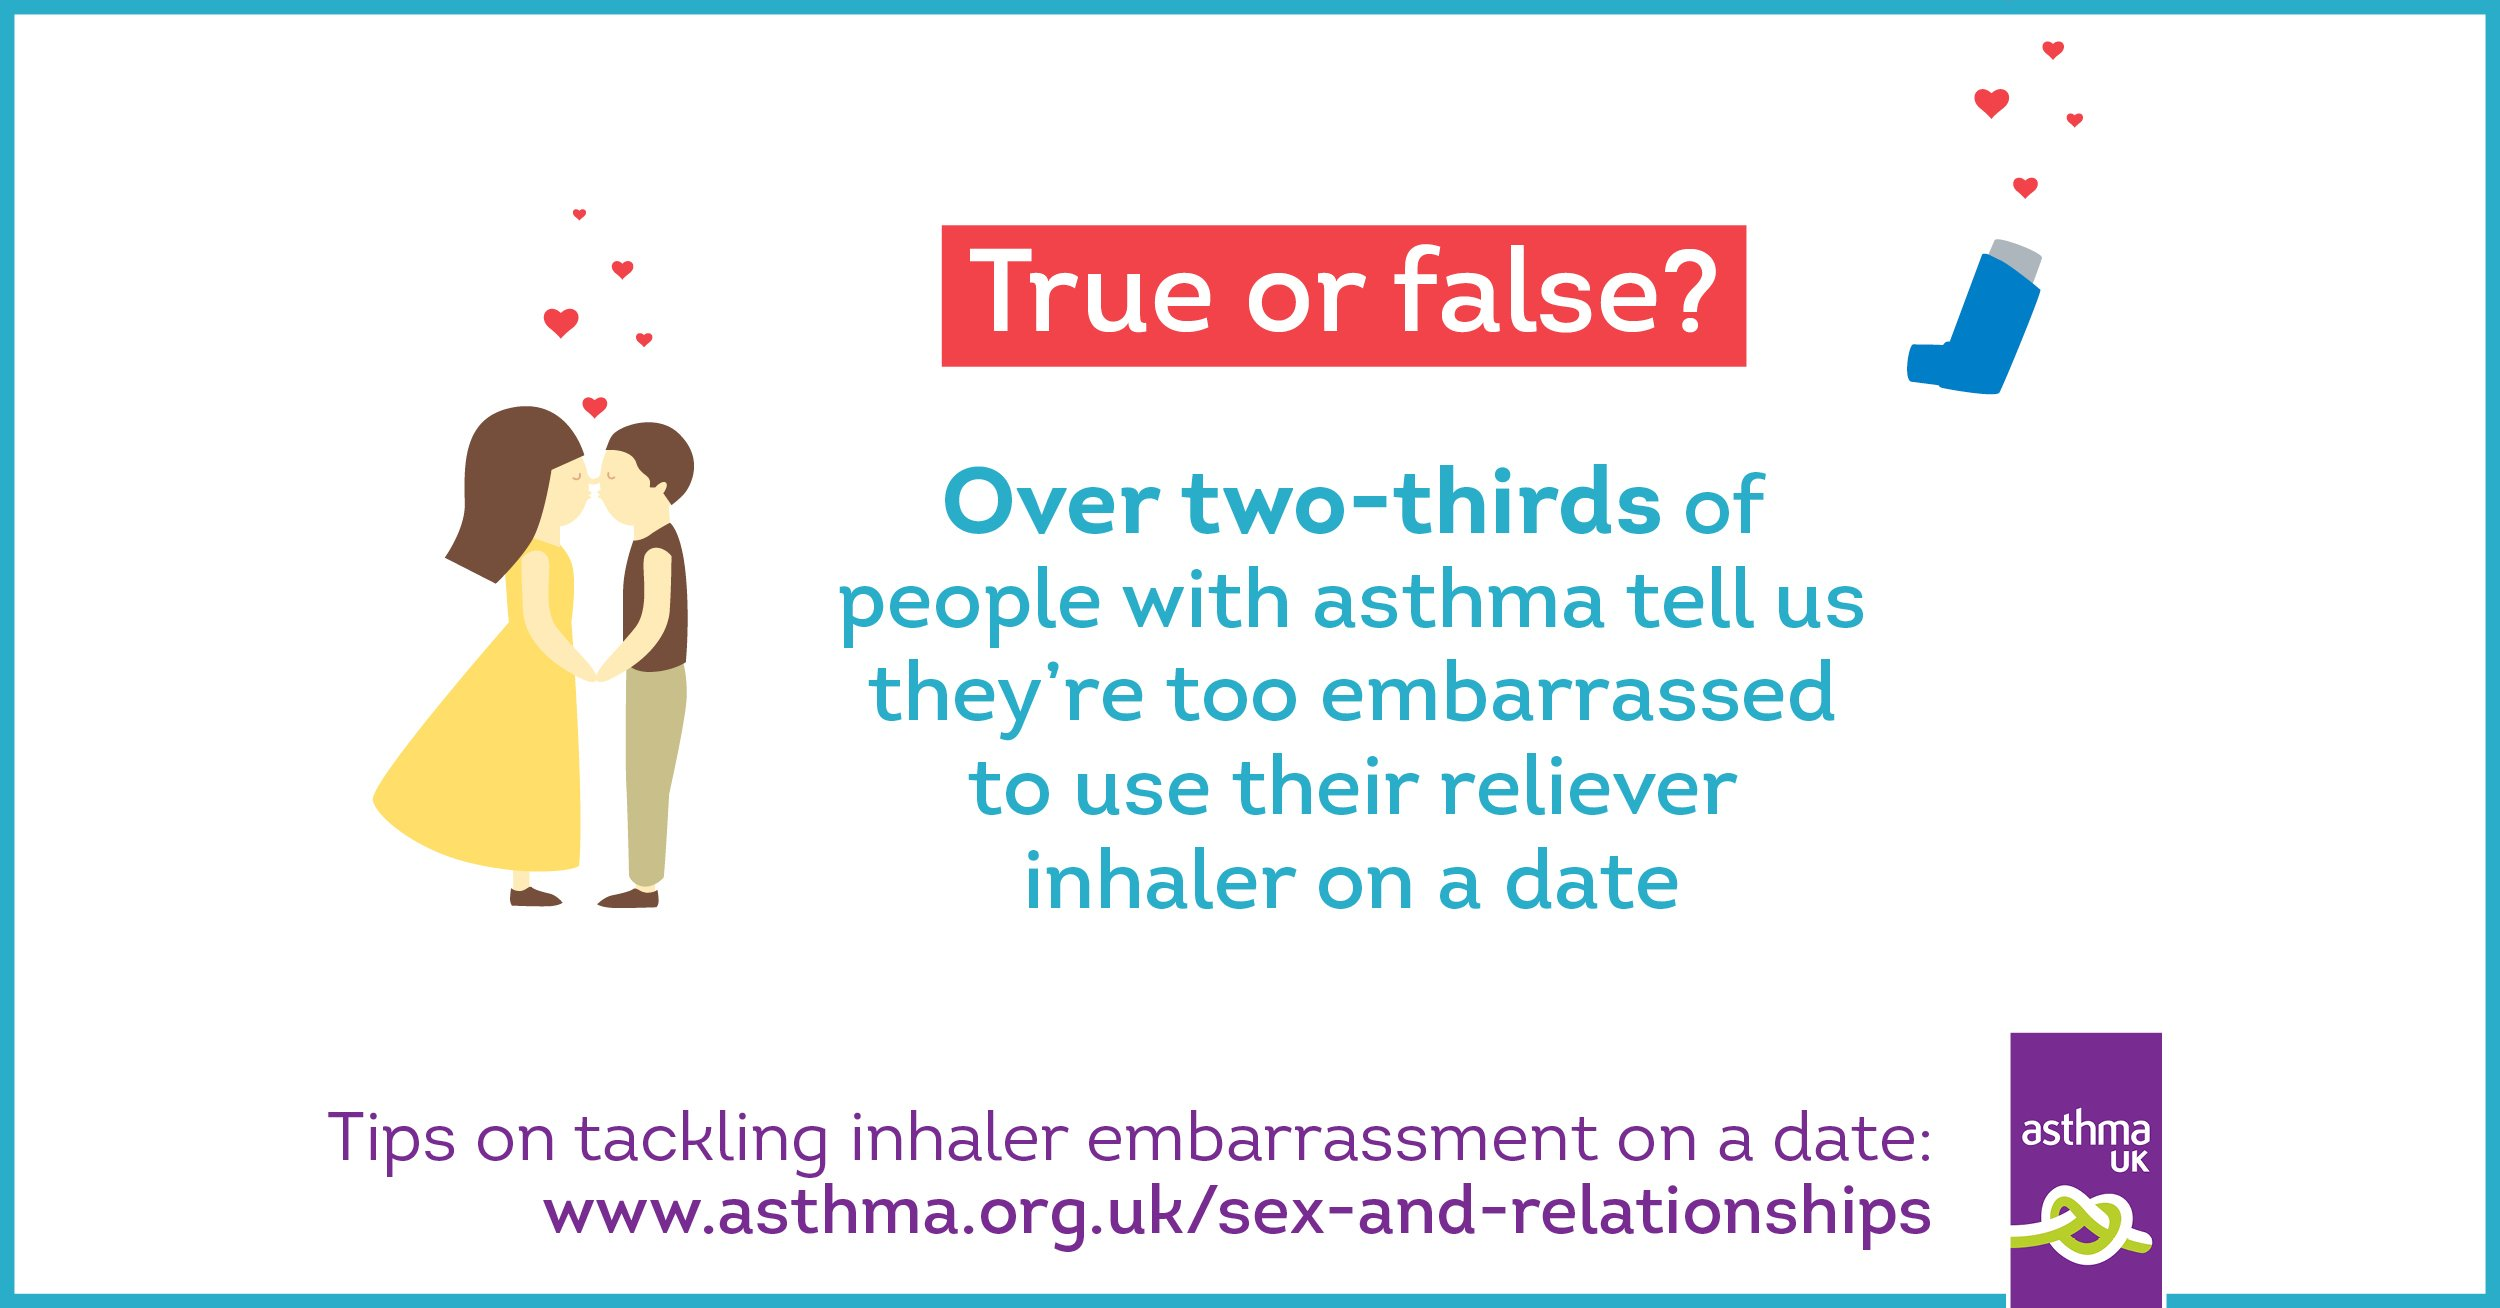 two thirds people with asthma tell us too embarrassed to use their inhaler on a date